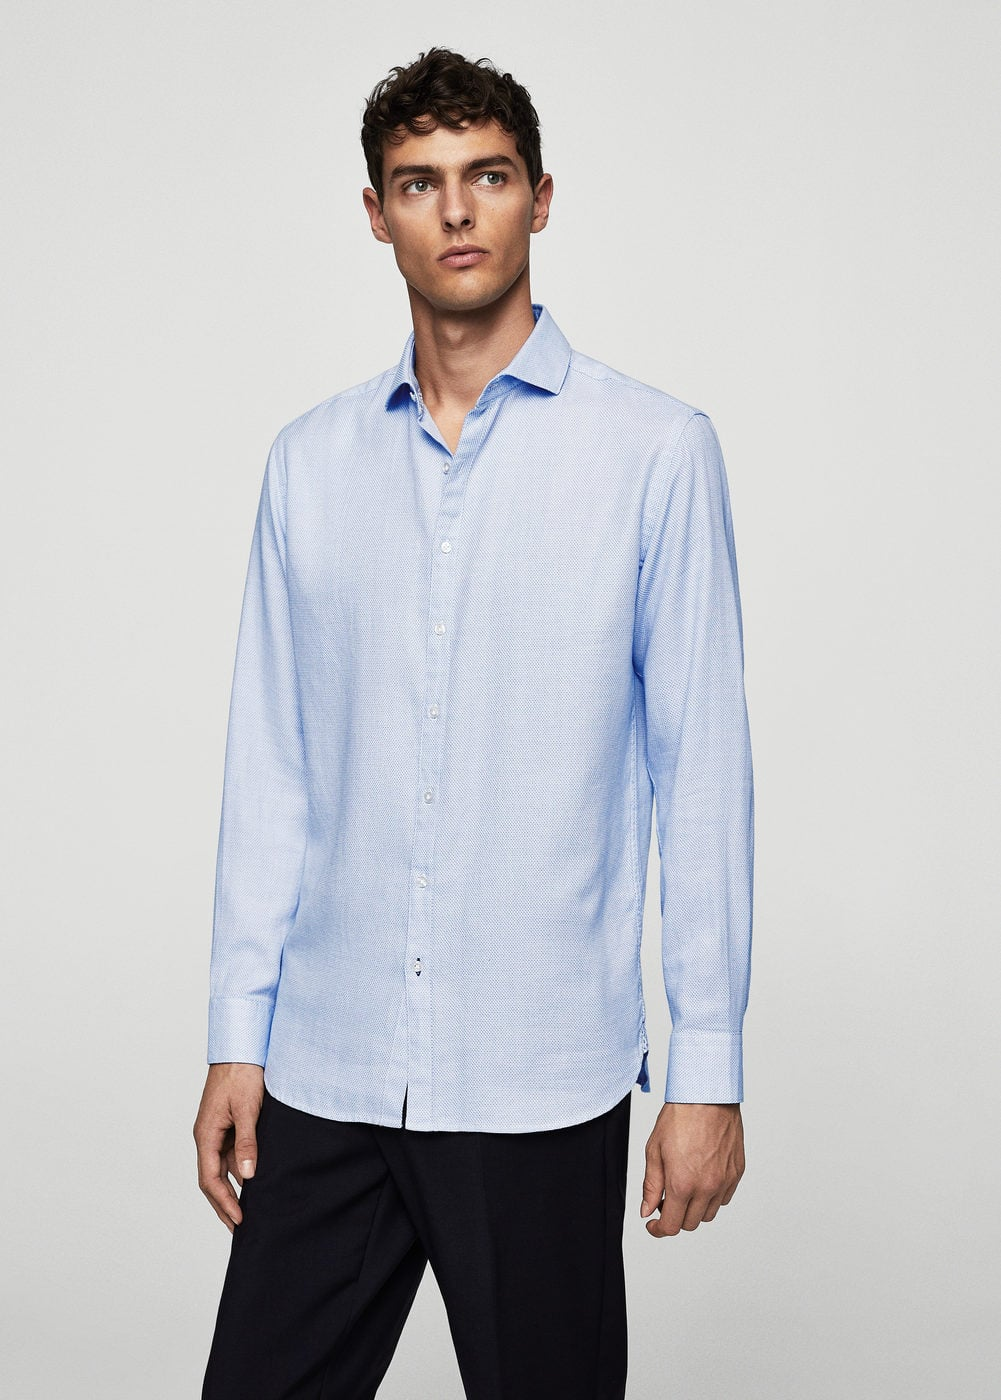 Chemise regular-fit en imprimé cravate | MANGO